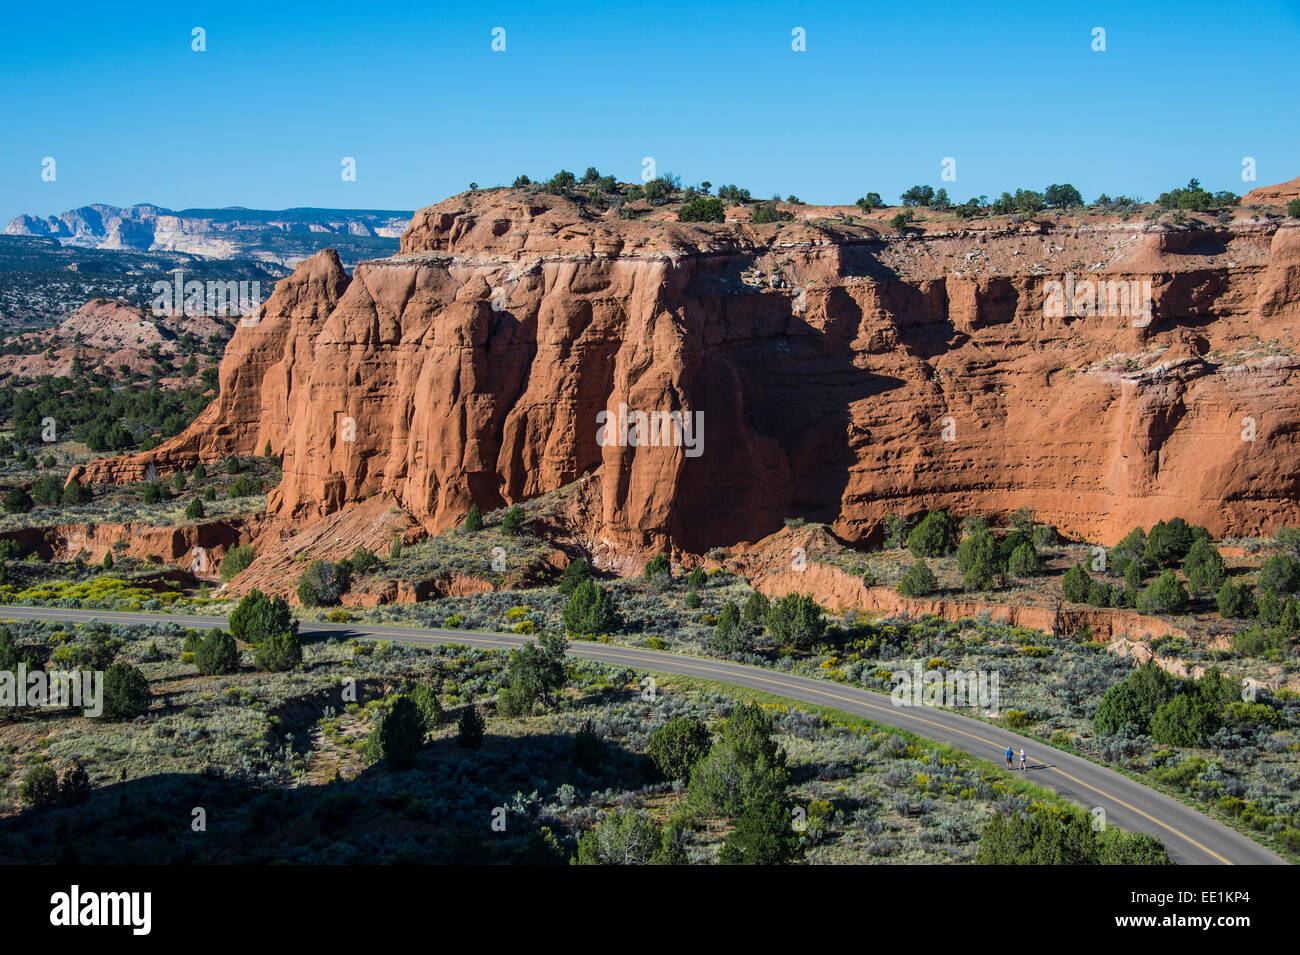 View over the Kodachrome Basin State Park, Utah, United States of America, North America - Stock Image